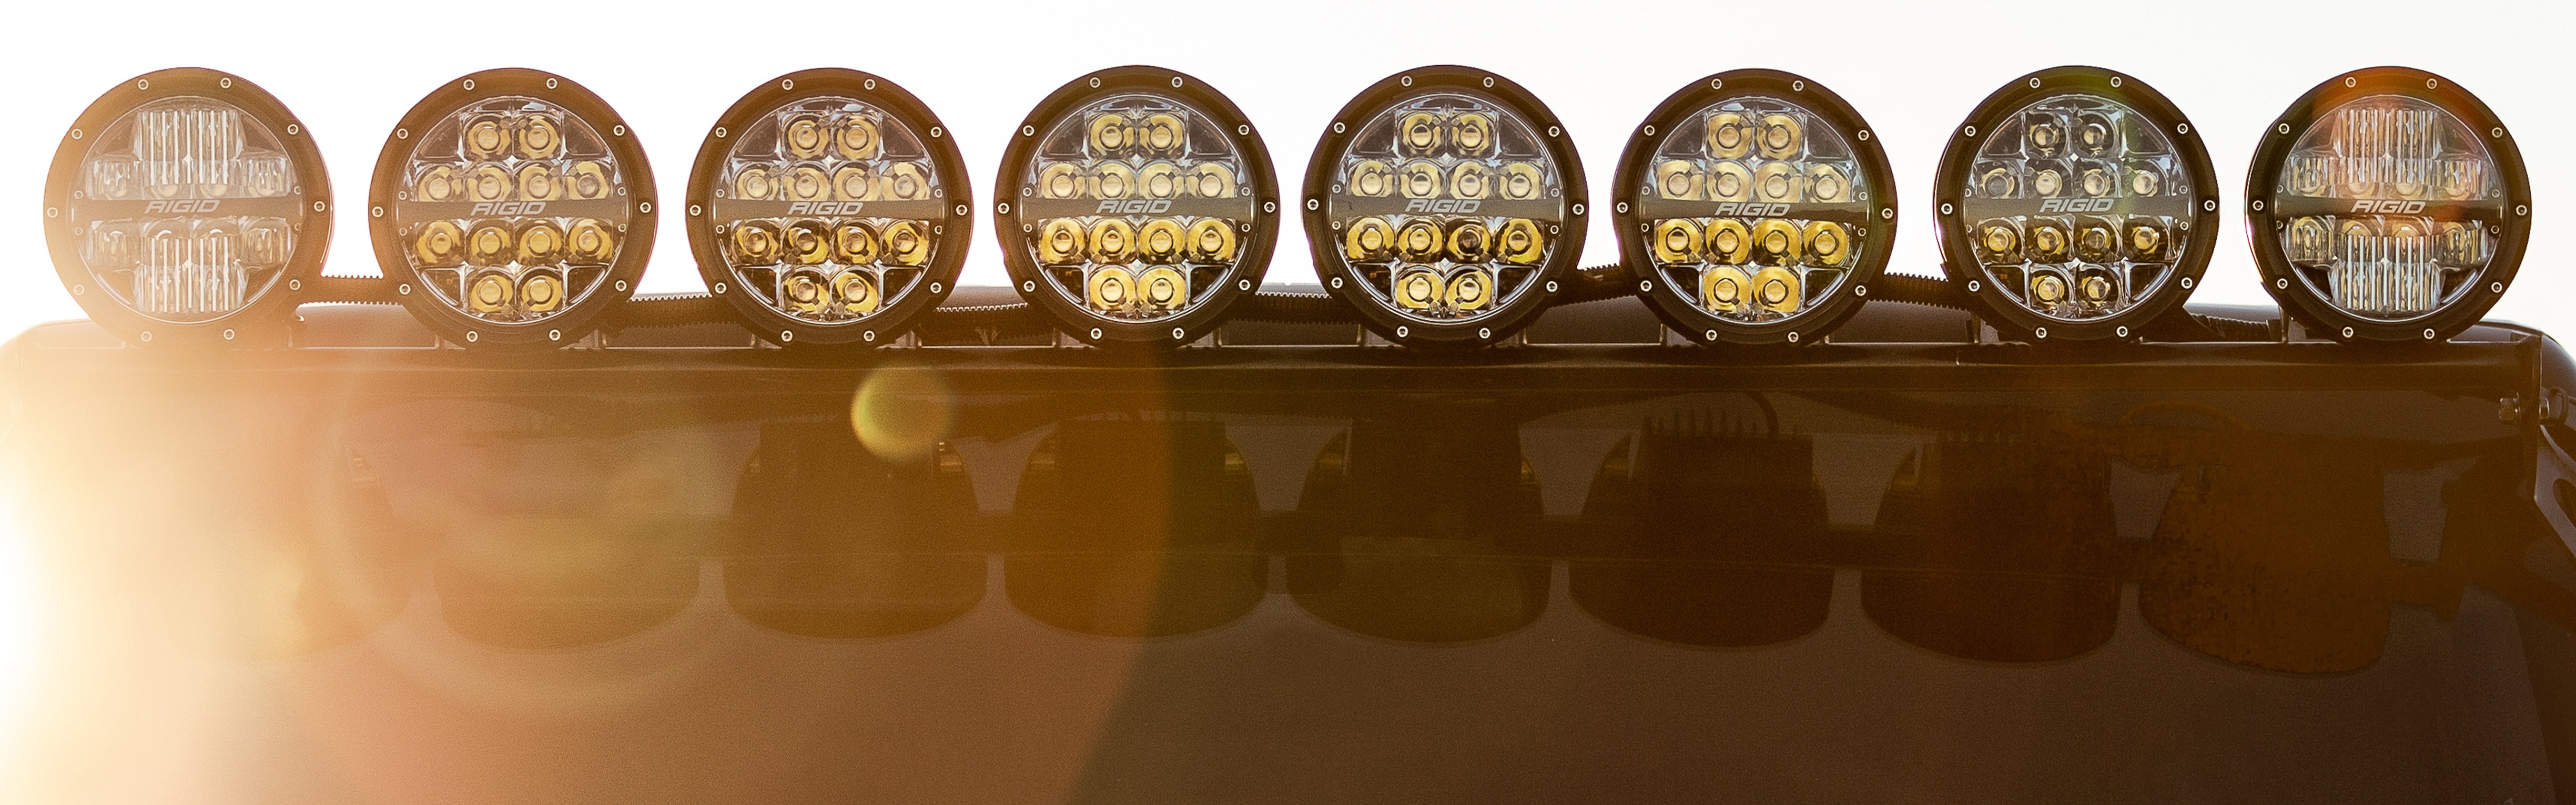 360-Series Round Lights Now Shipping!